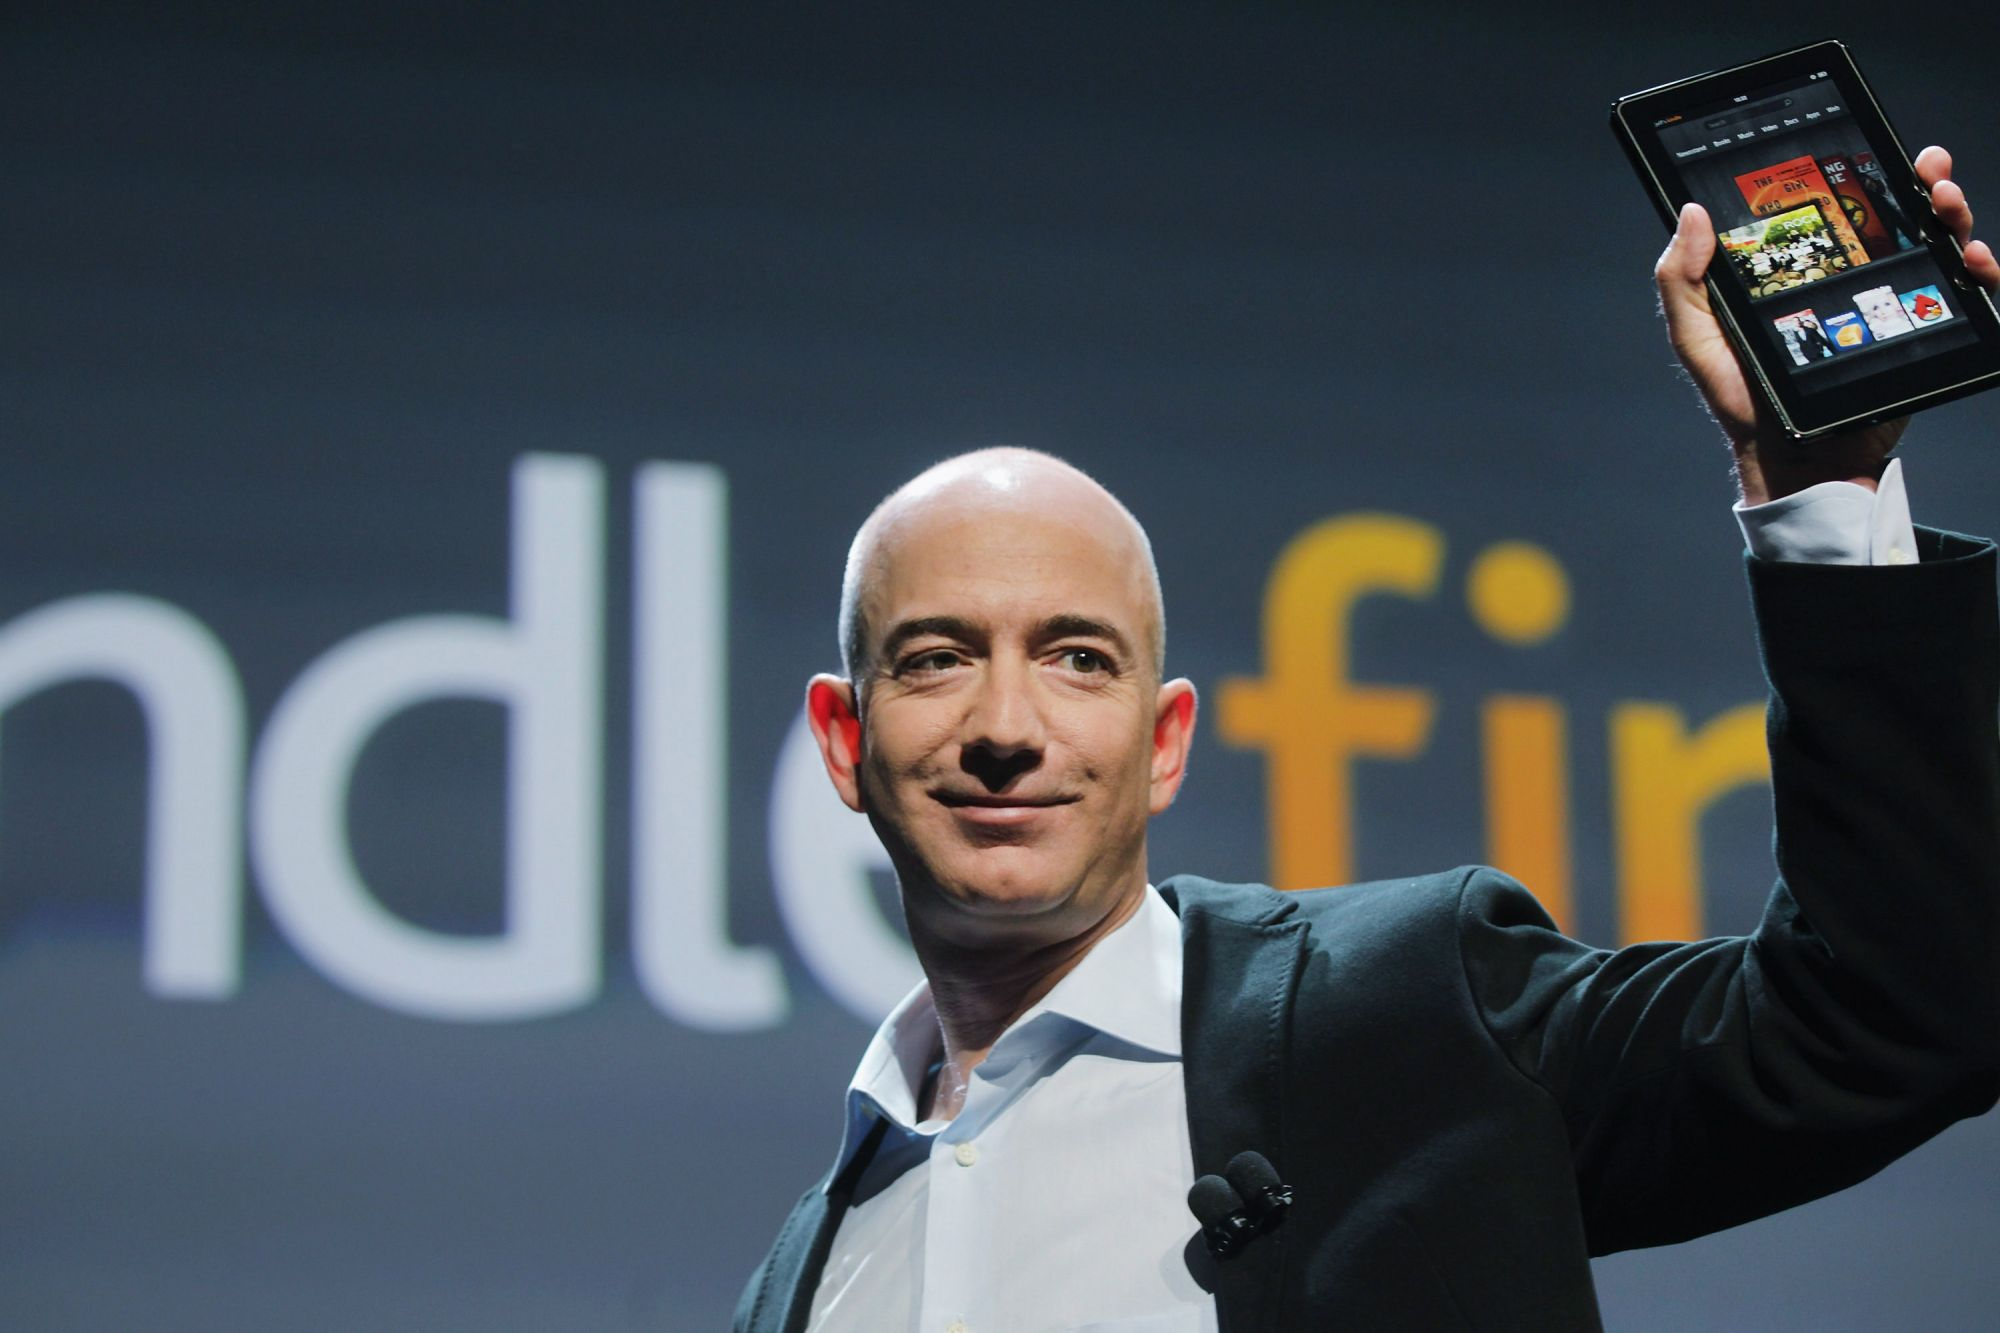 NEW YORK, NY - SEPTEMBER 28:  Amazon founder Jeff Bezos holds the new Amazon tablet called the Kindle Fire on September 28, 2011 in New York City. The Fire, which will be priced at $199, is an expanded version of the company's Kindle e-reader that has 8GB of storage and WiFi. The Fire gives users access to streaming video, as well as e-books, apps and music, and has a Web browser. In addition to the Fire, Bezos introduced four new Kindles including a Kindle touch model.  (Photo by Spencer Platt/Getty Imag